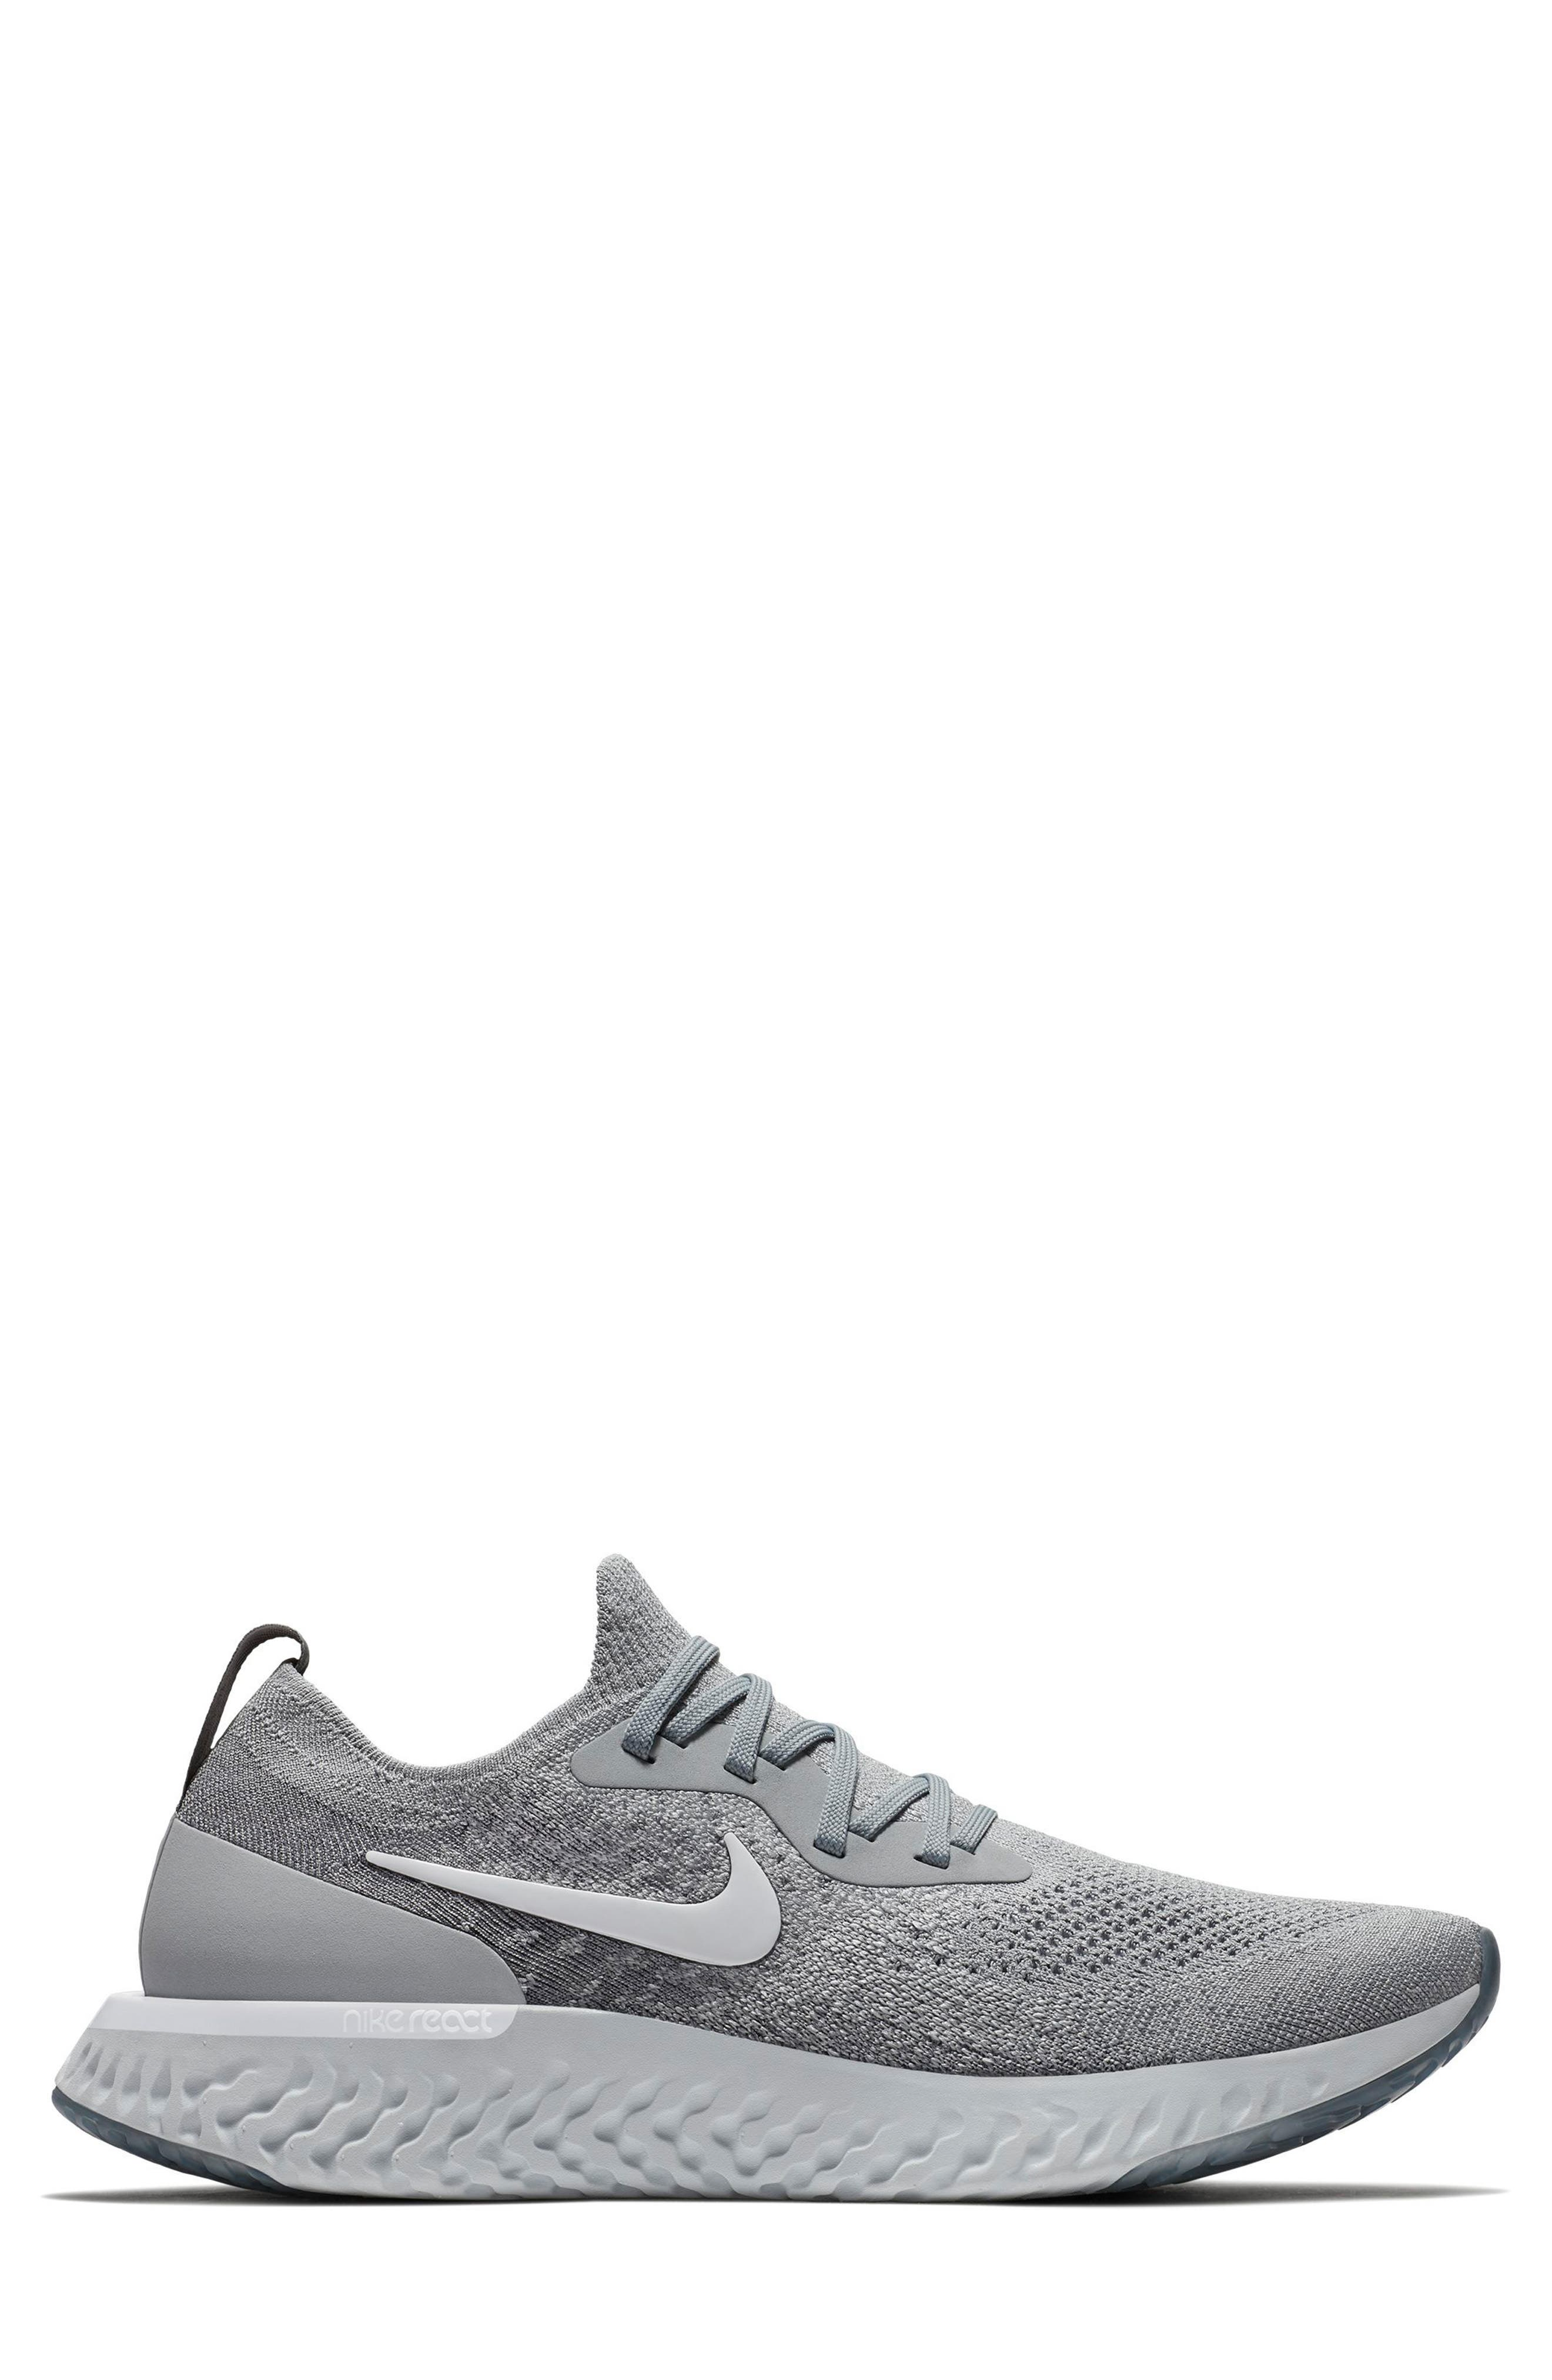 light nike shoes knitted afghan free 949602